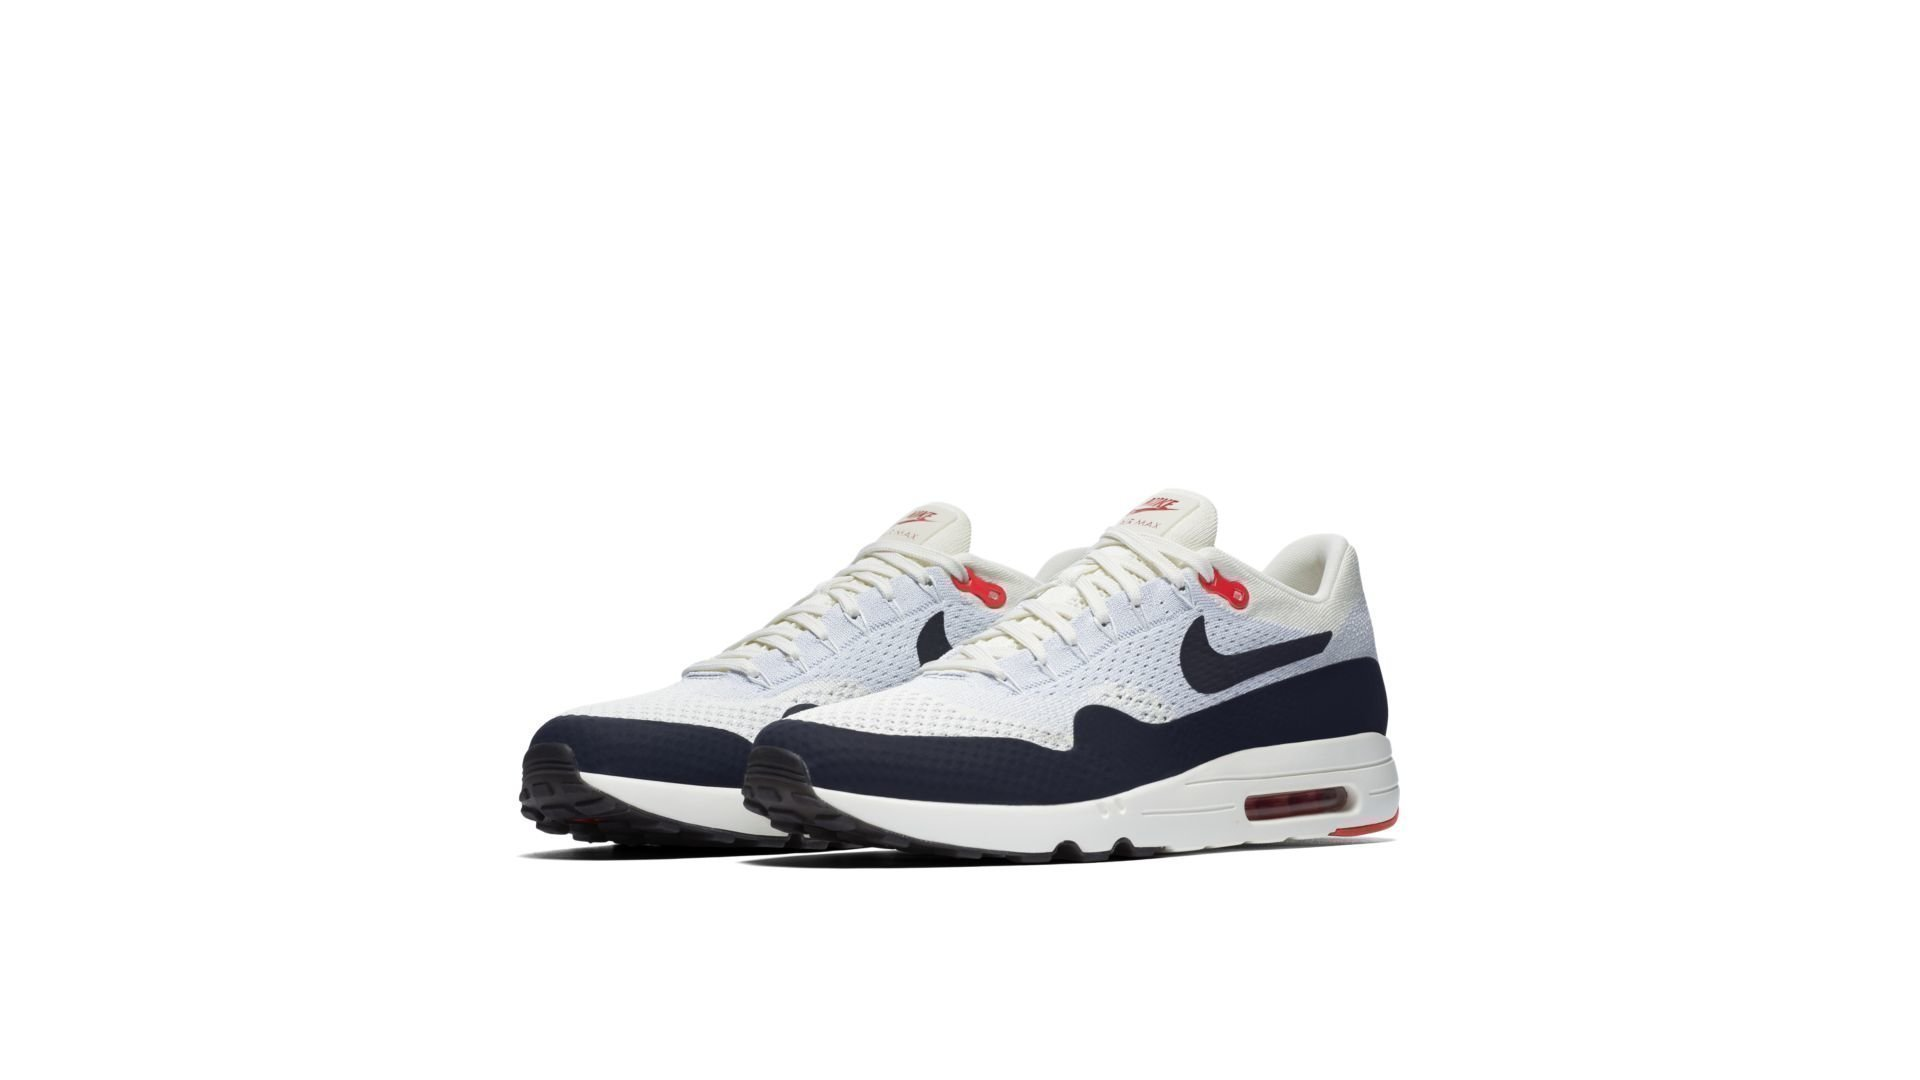 Sneakers Nike Air Max 1 Ultra 2.0 Flyknit sail obsidian wolf grey 875942 100